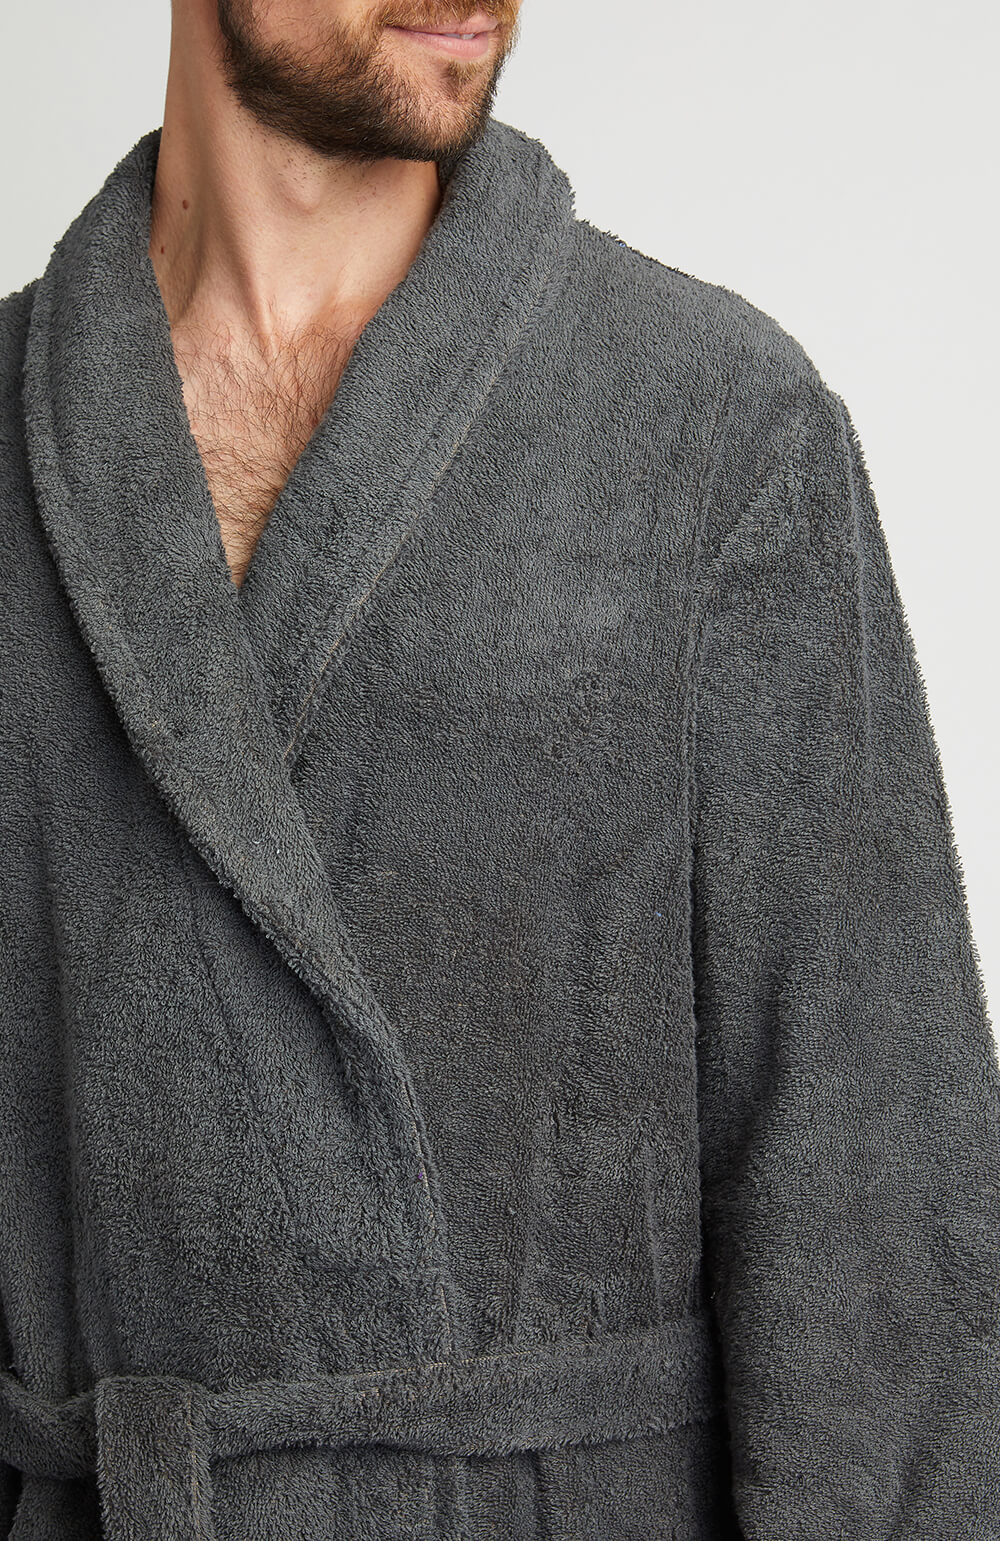 Unisex Towelling Robe (scbr) - Charcoal